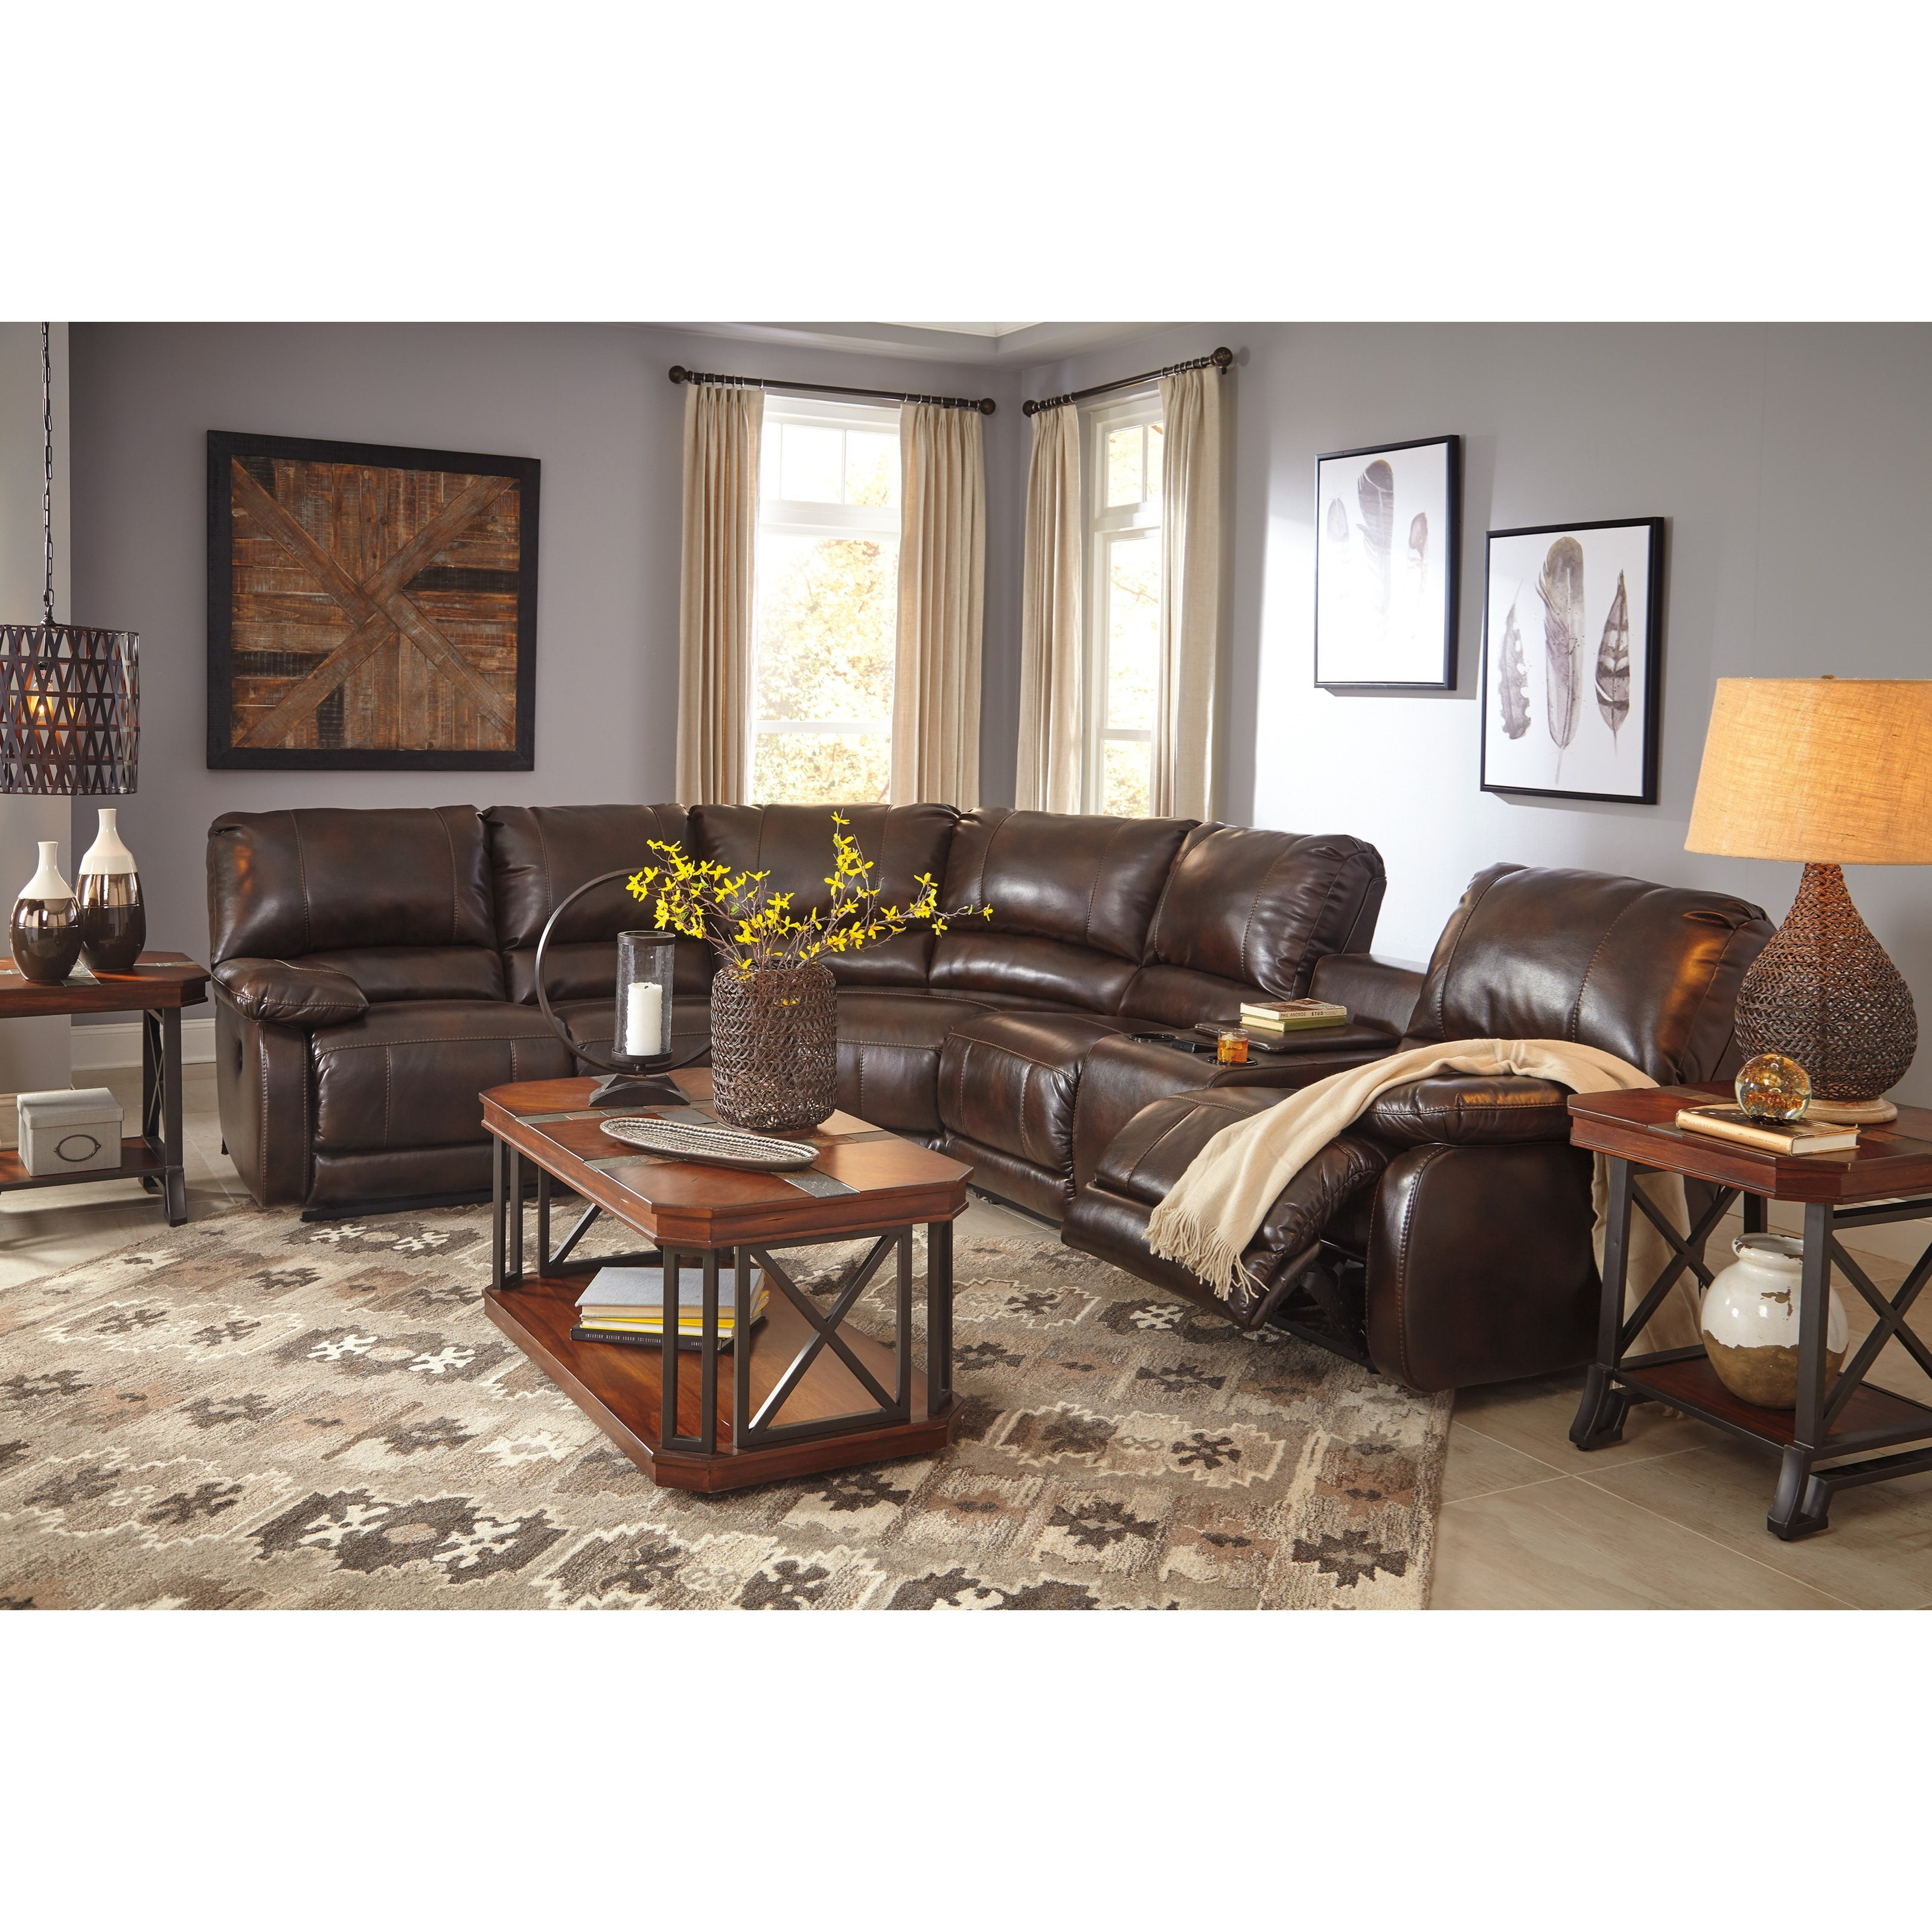 Hallettsville Living Room Collection